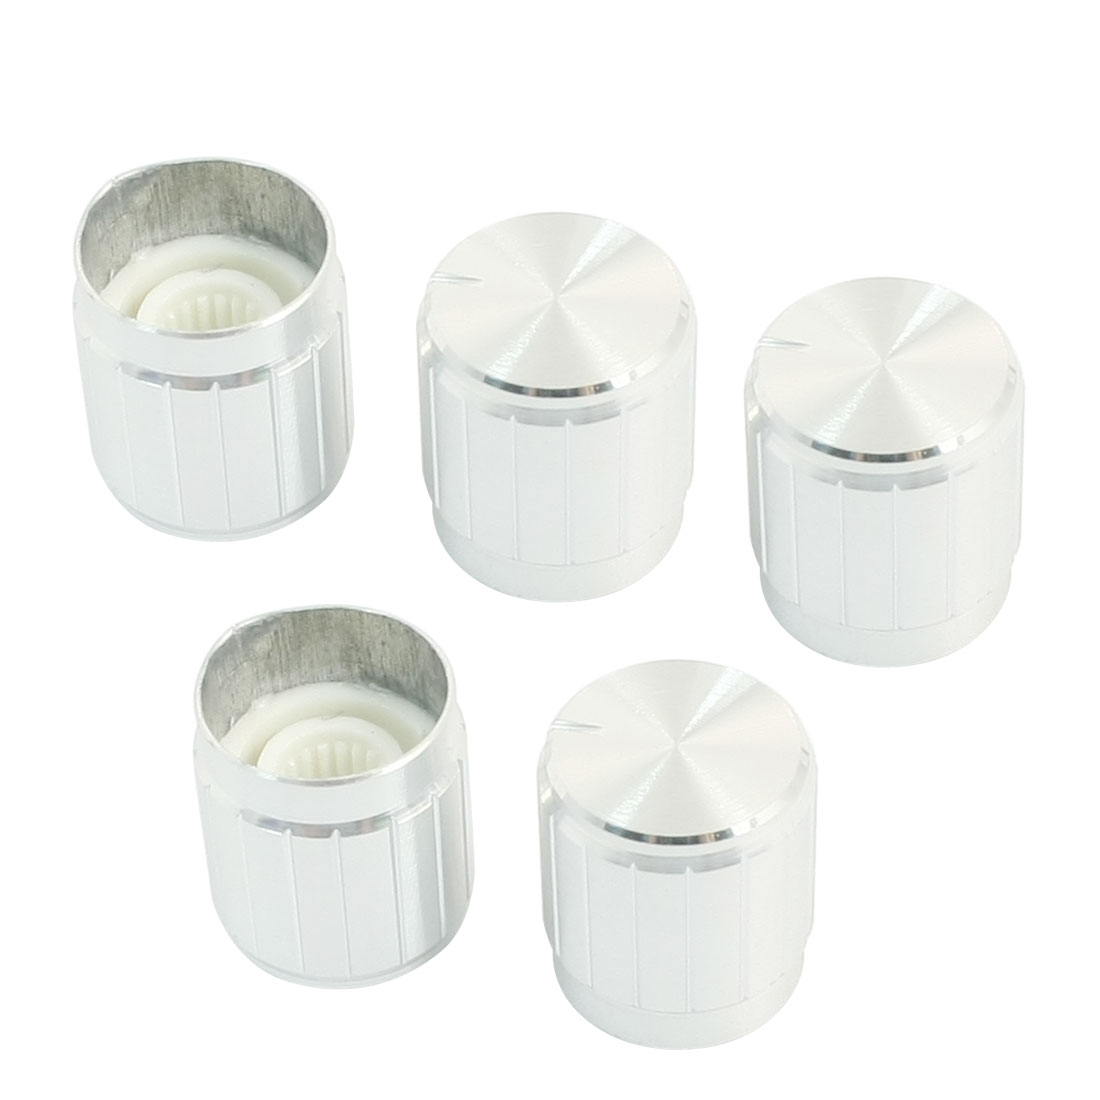 5Pcs 6mm Dia Knurled Shaft Silver Tone Potentiometer Rotary Knobs Caps